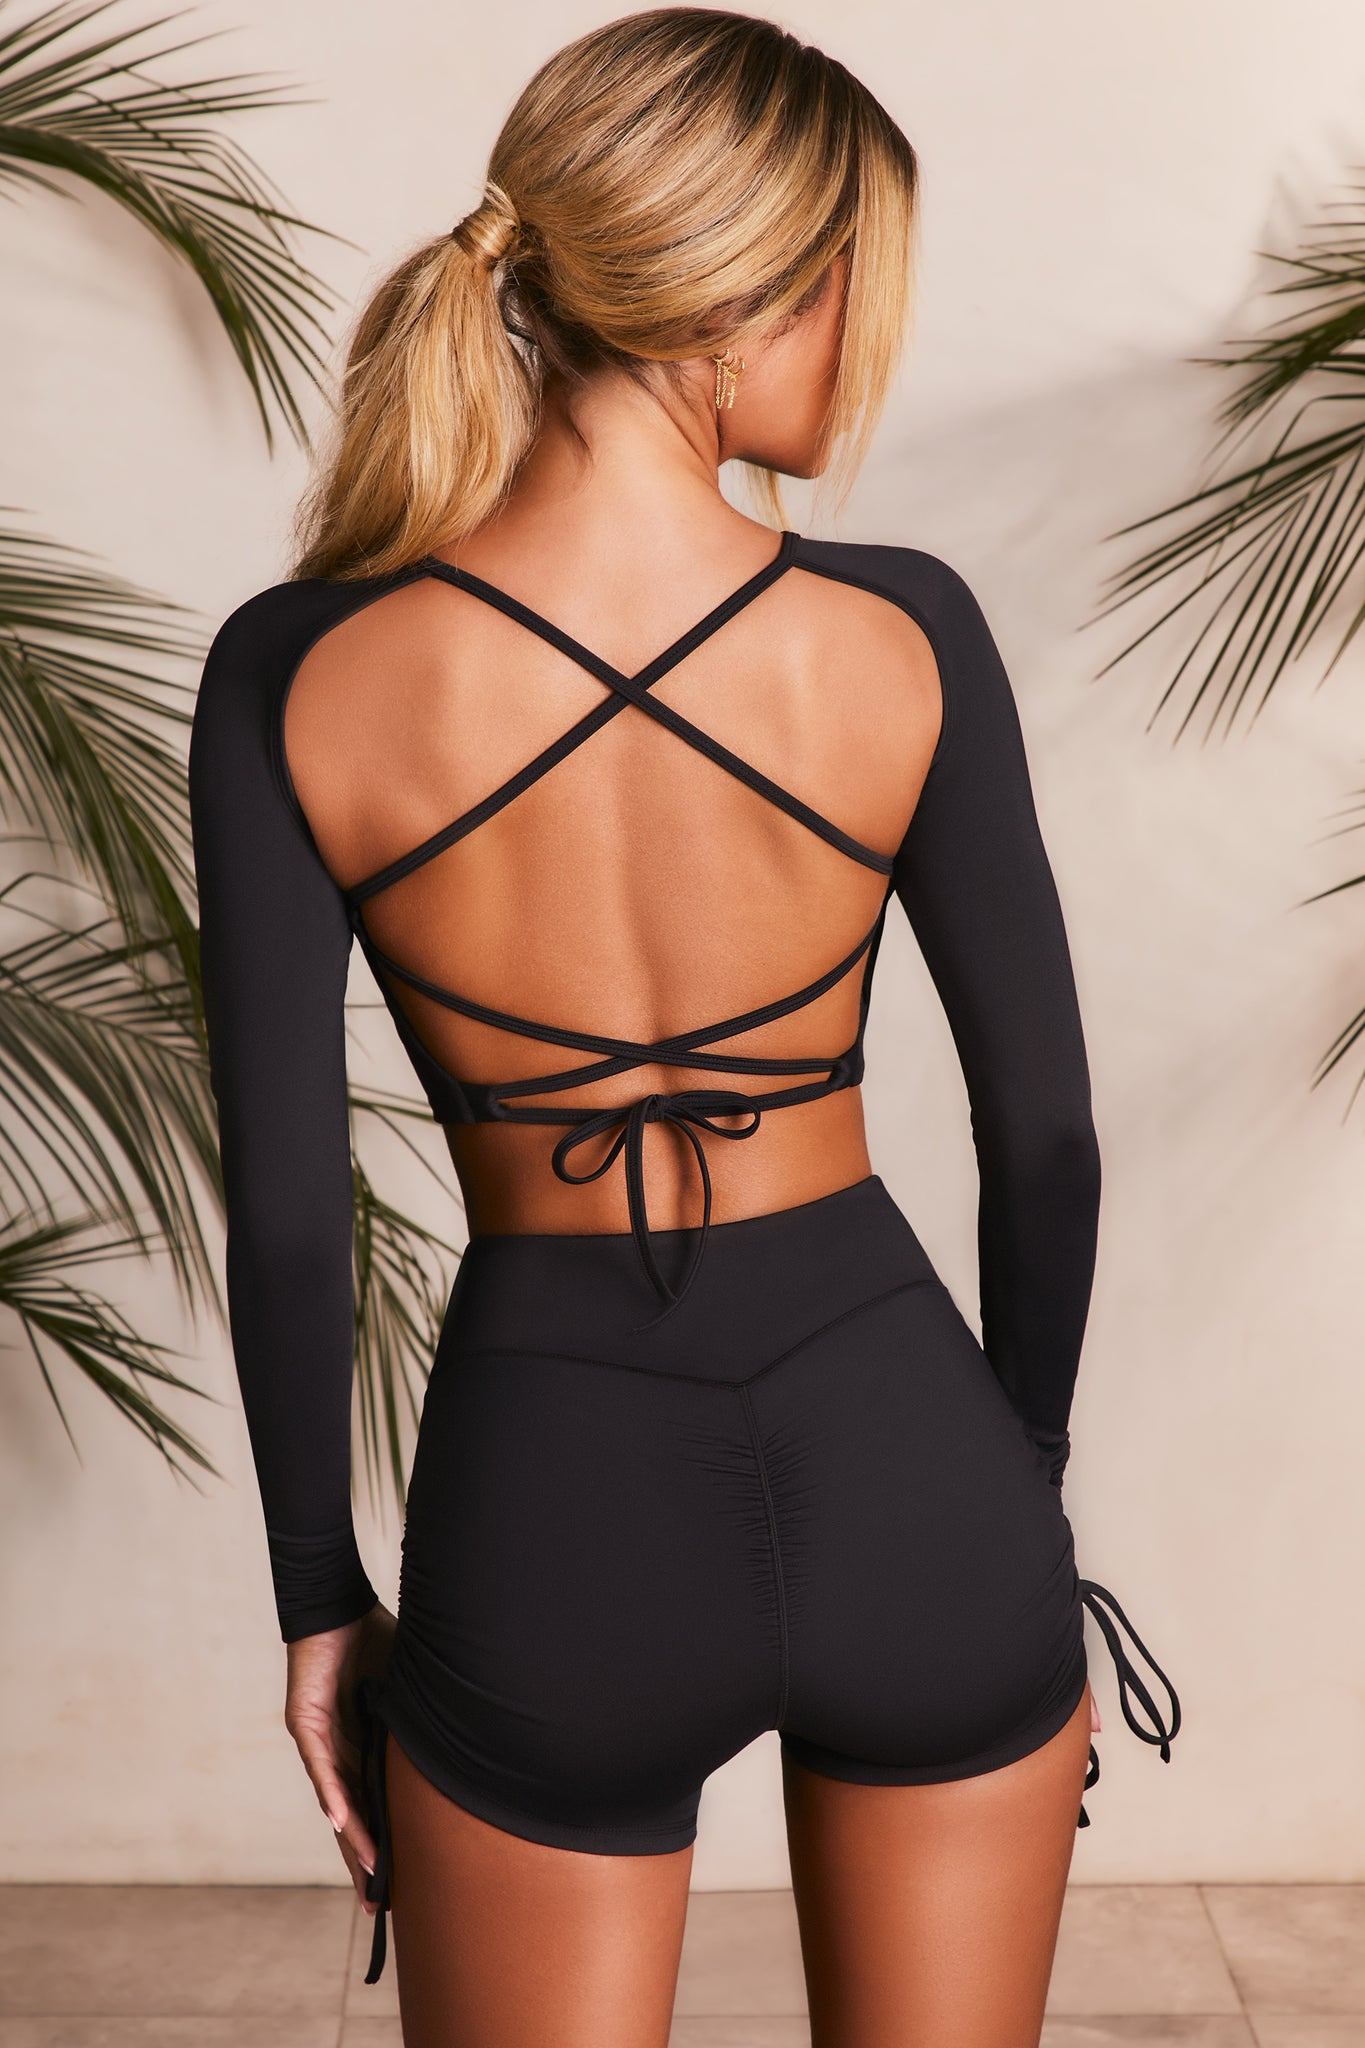 Slinky long sleeve crop top in black with an open back and cross ties Image 3 of 6.